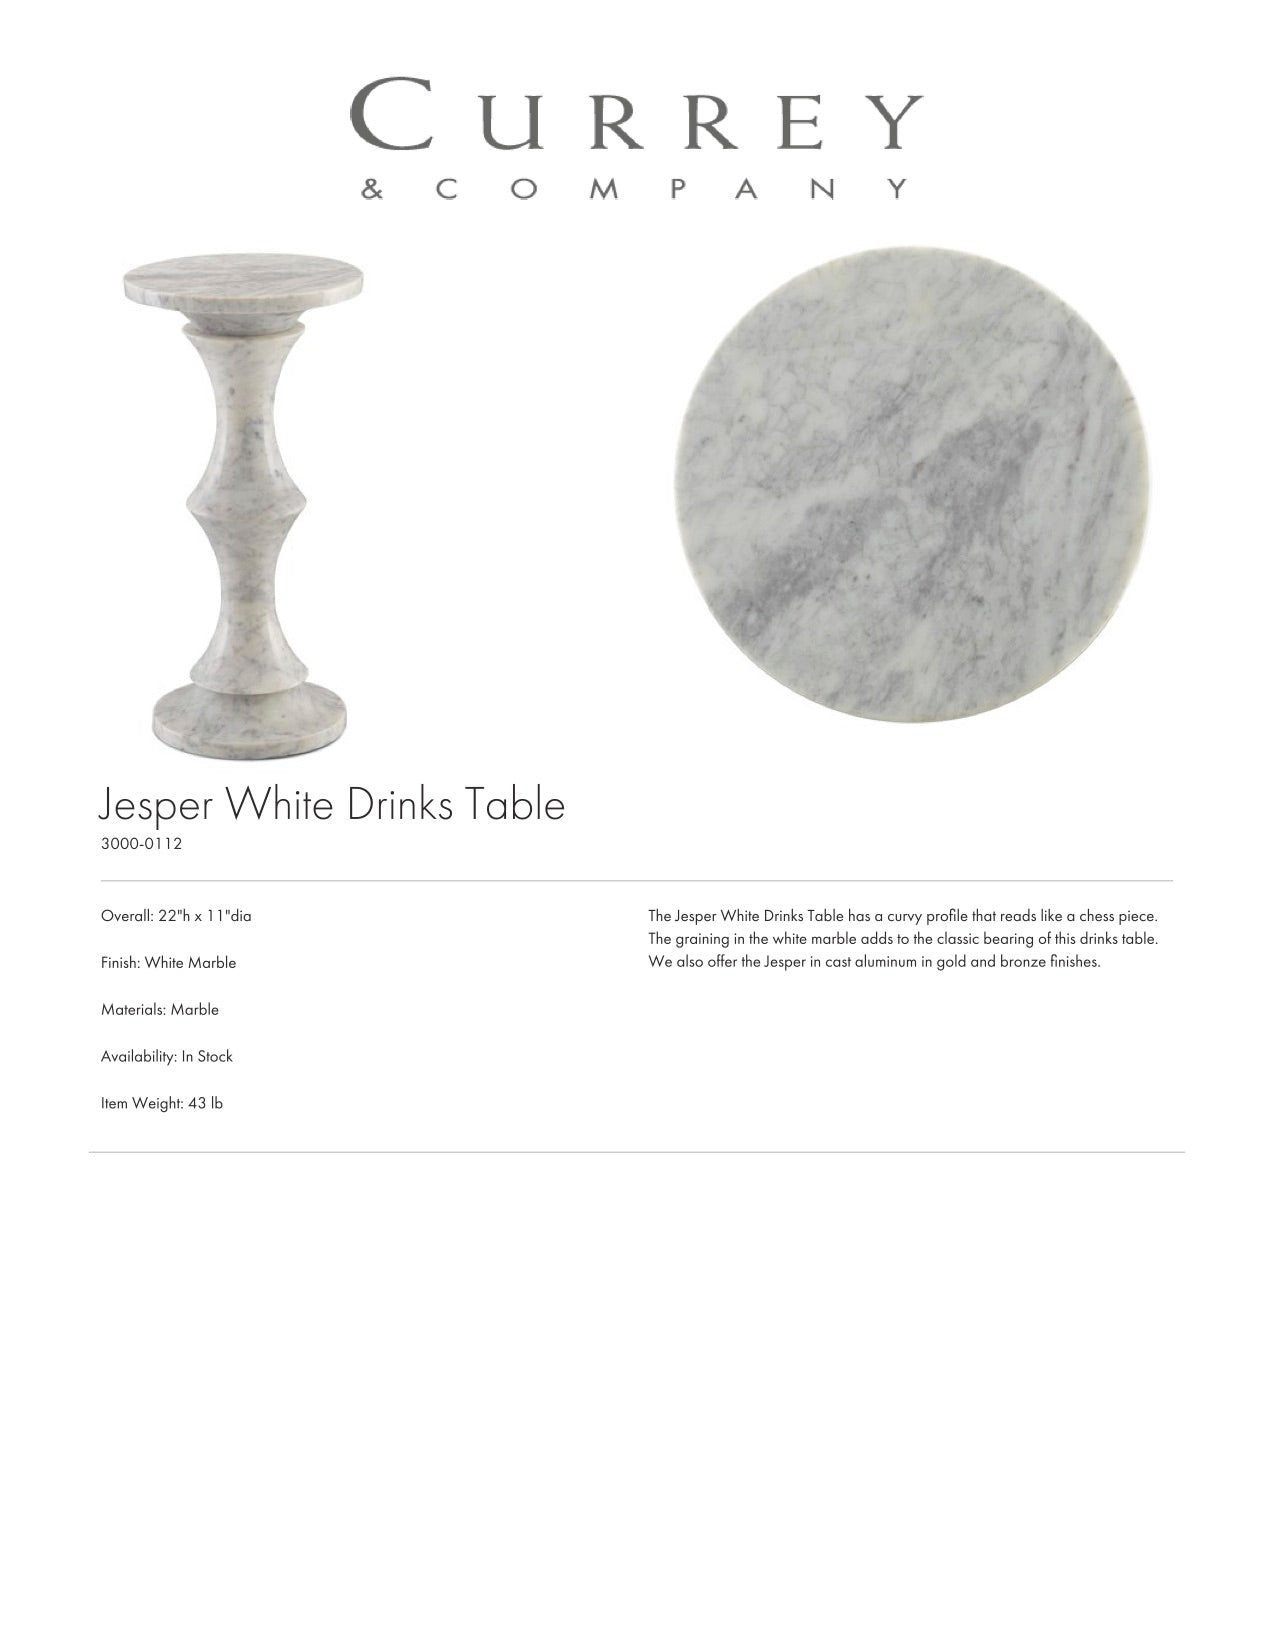 Currey & Company Jesper White Drinks Table Tearsheet